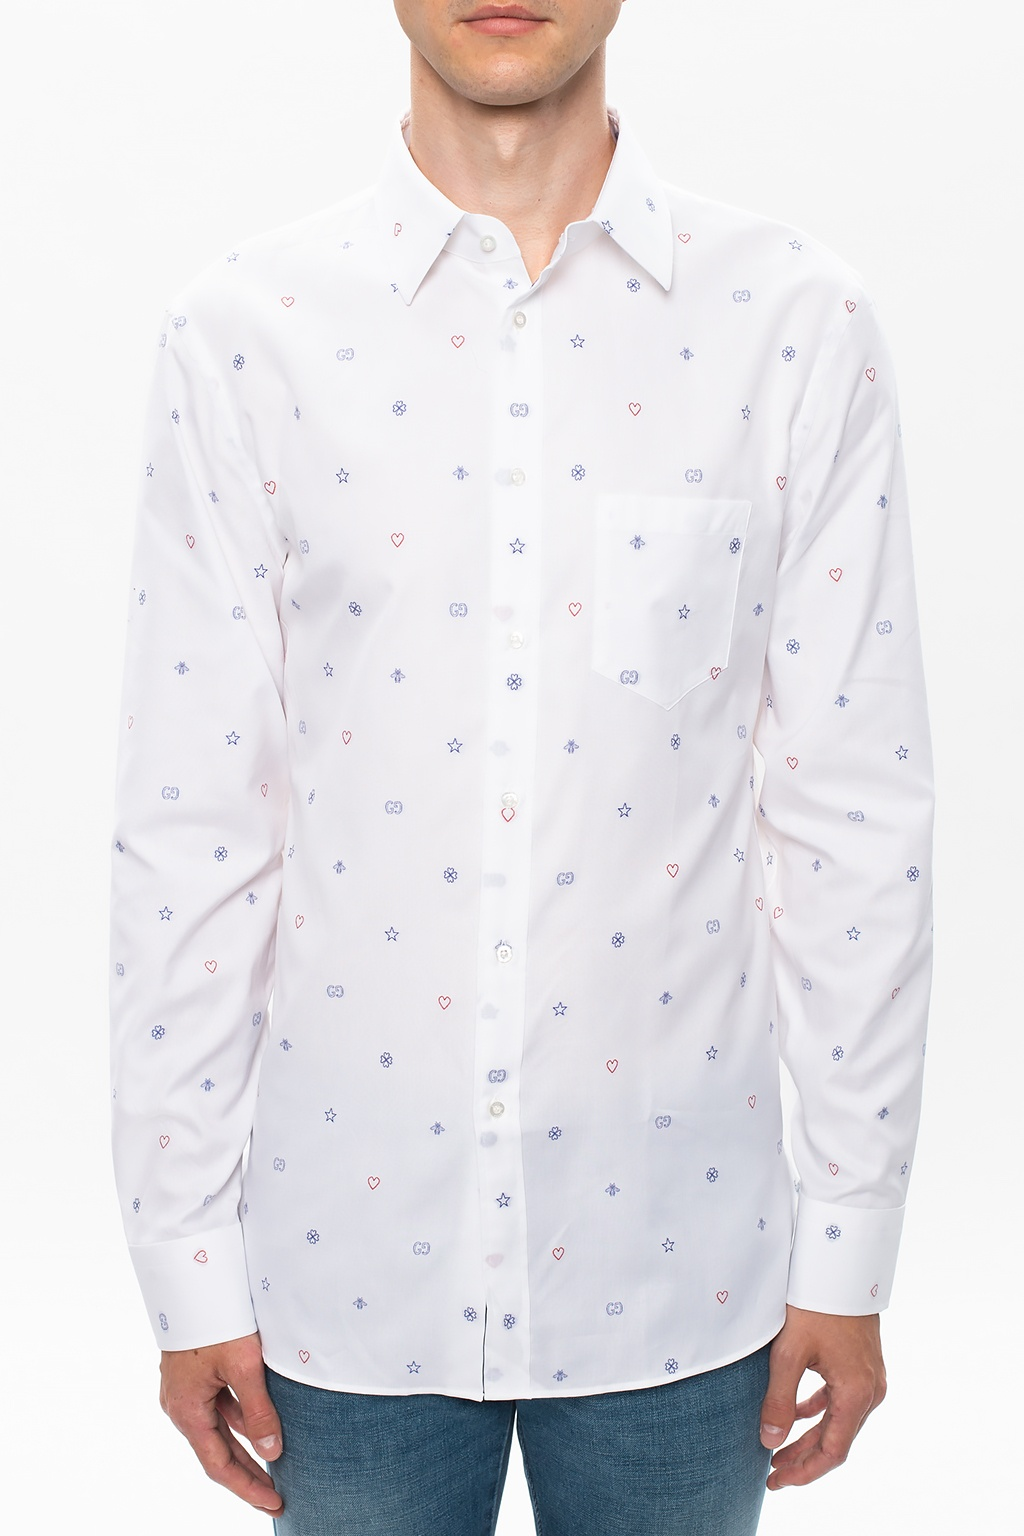 Gucci Cotton shirt with logo